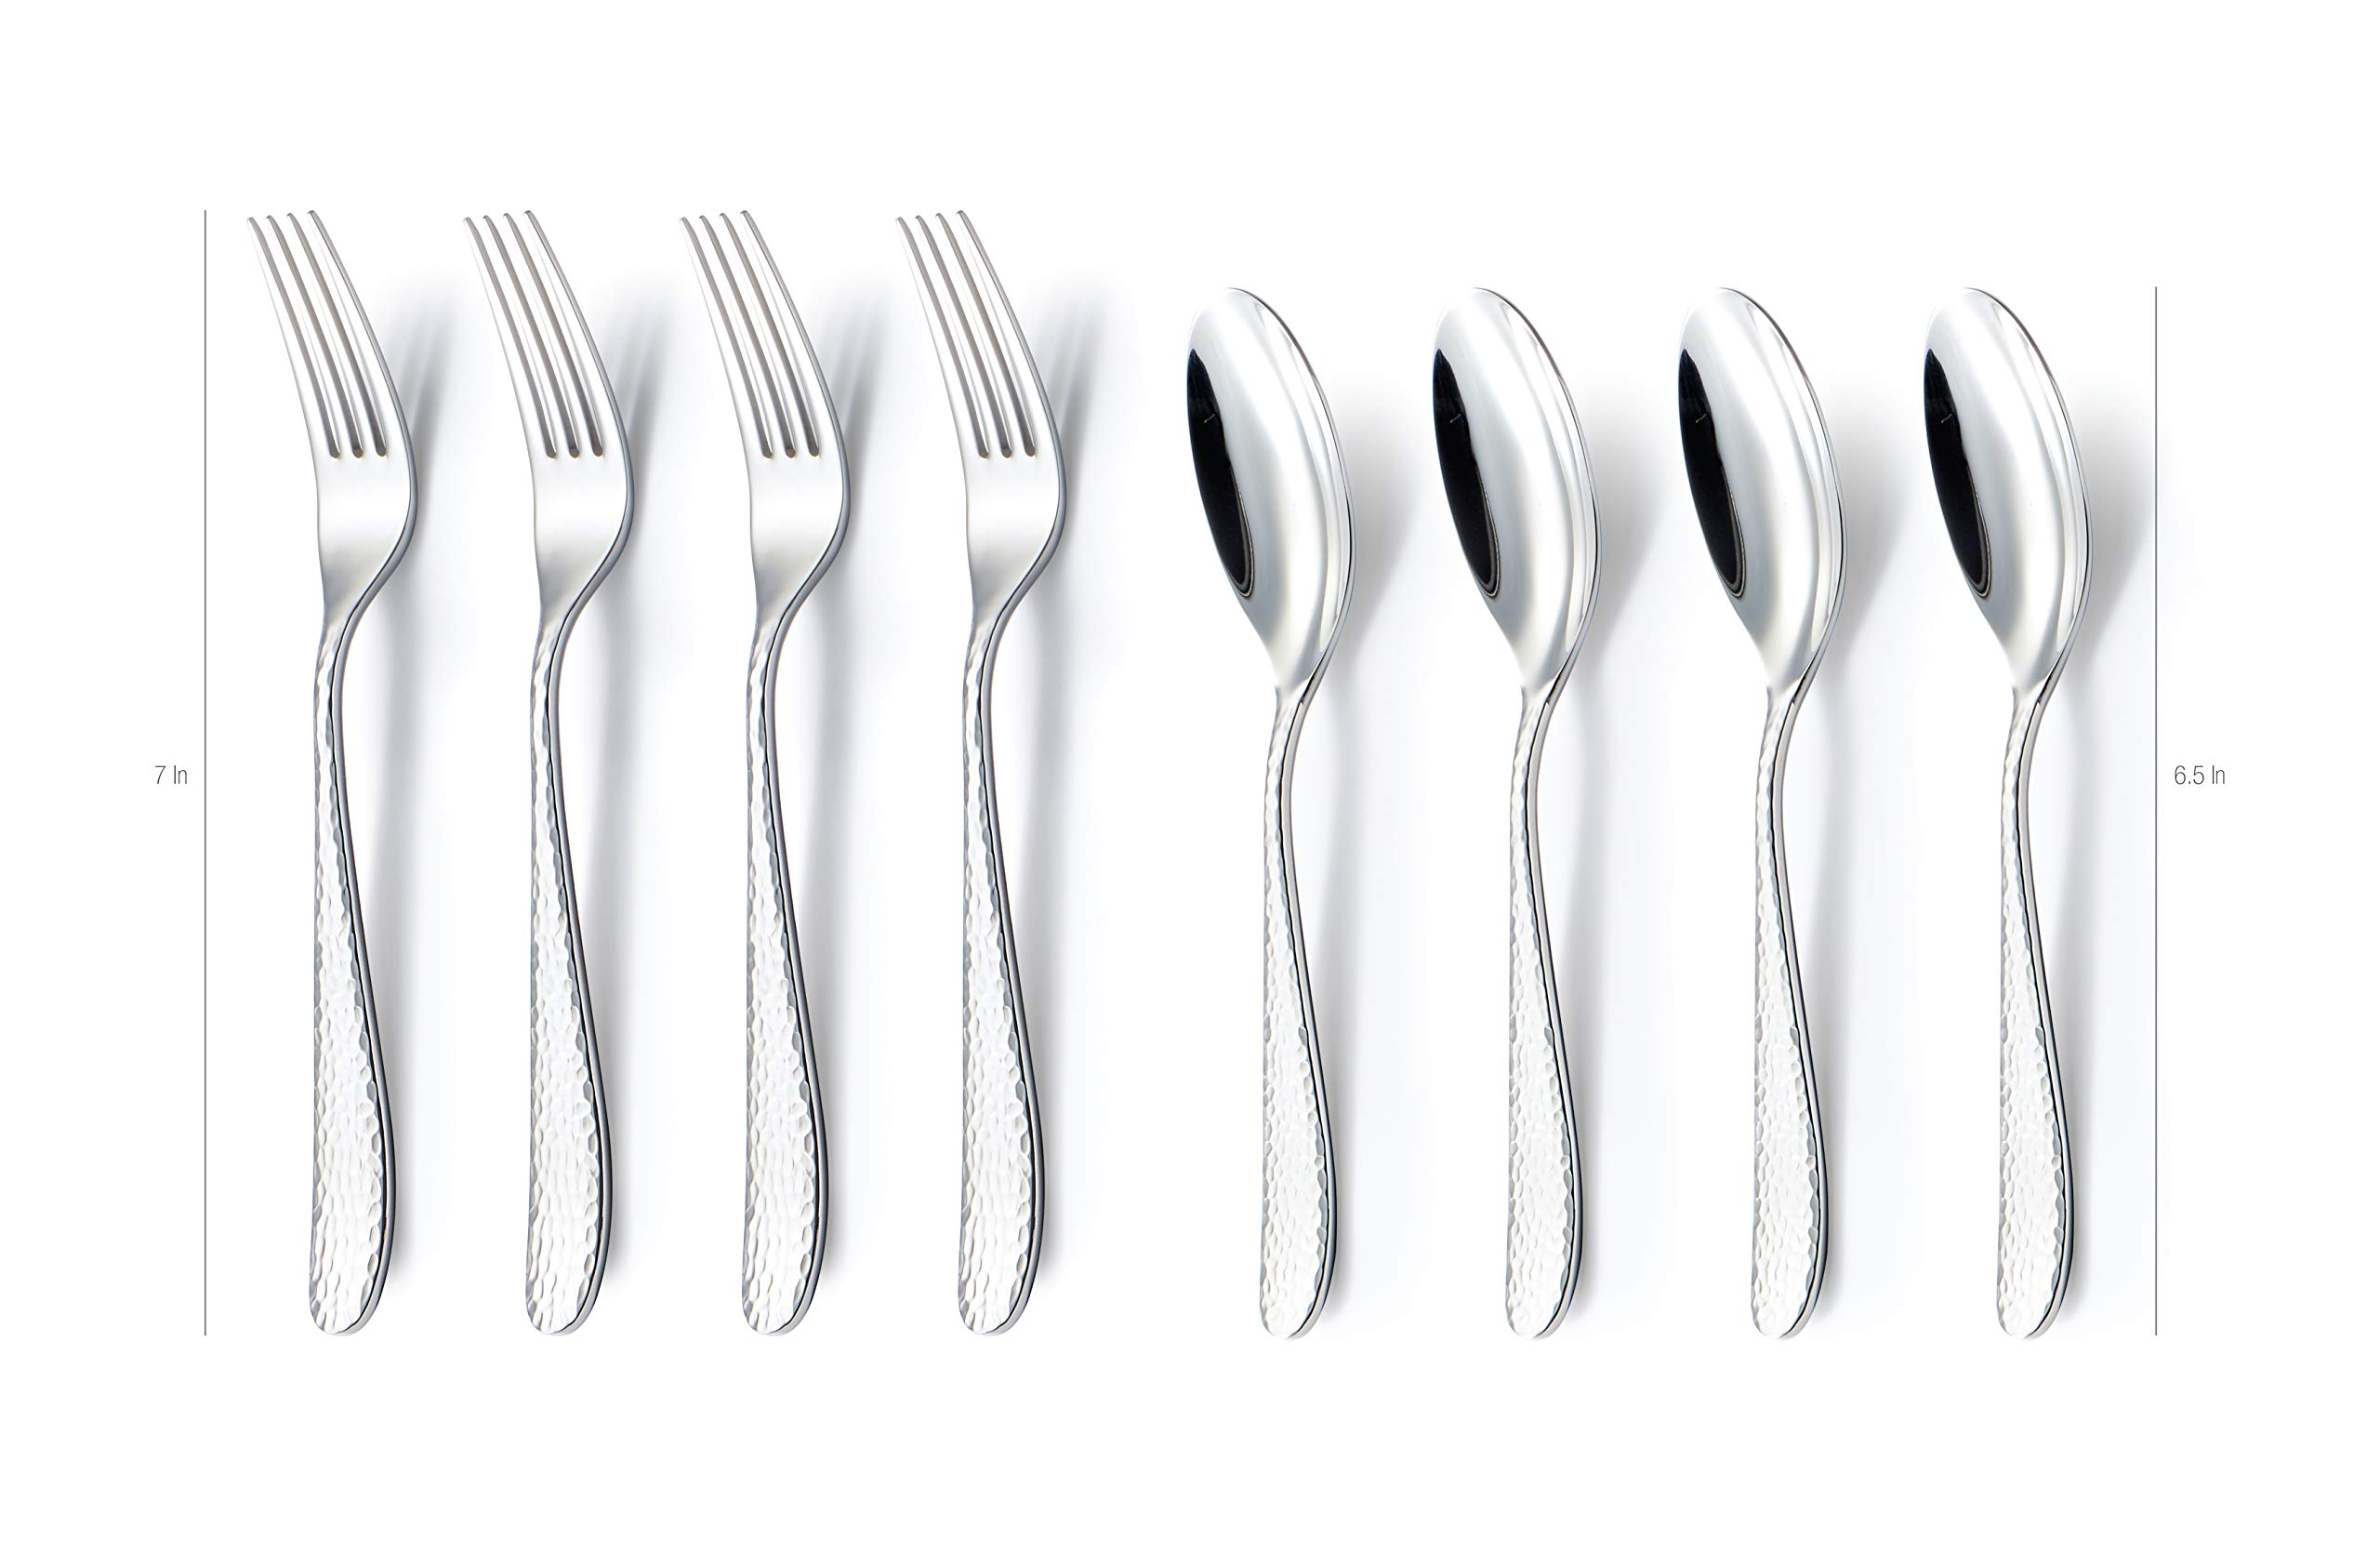 DANIALLI 8 Piece Silverware Set For 4, Include Long Teaspoon/Salad Fork, Modern Hammered Design Flatware Set, Premium Quality 18 10 Stainless Steel Silverware, Mirror-Polished Dishwasher Safe Cutlery